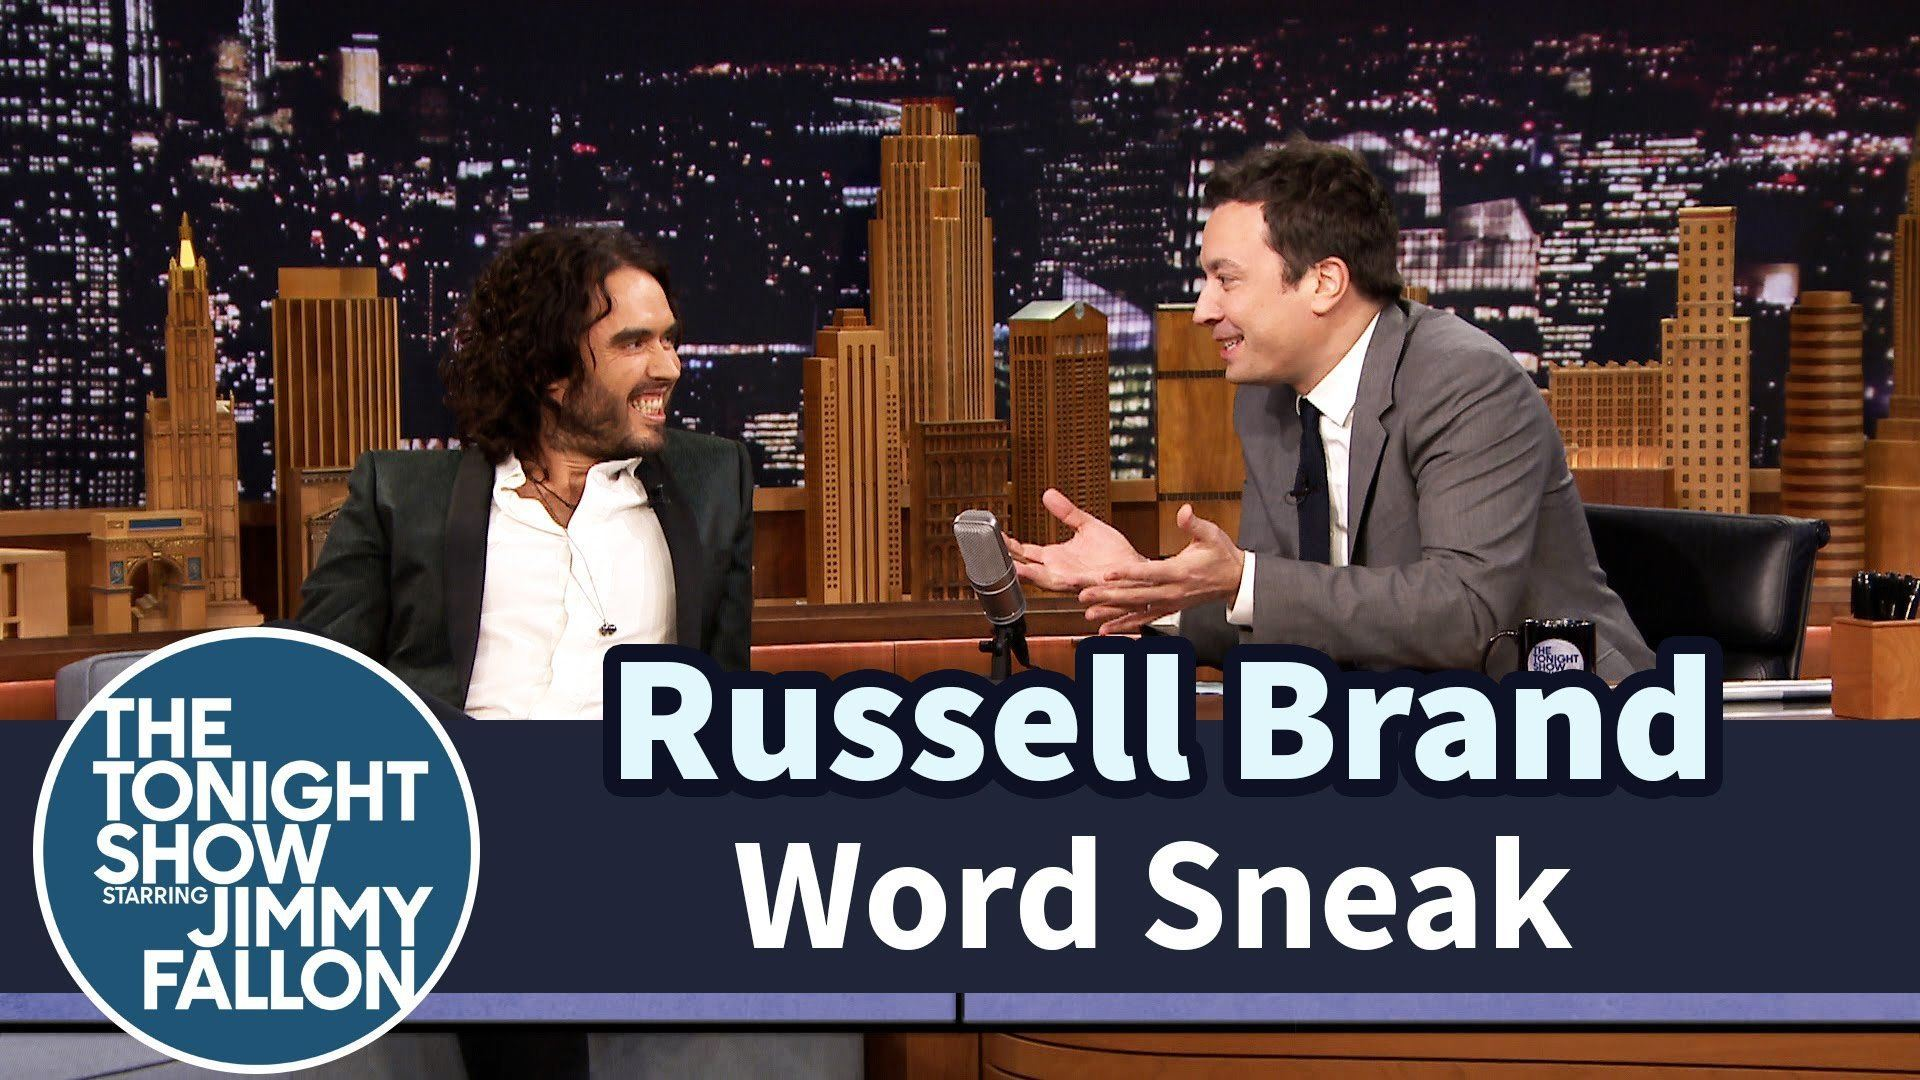 Russell Brand Shines In A Game Of Word Sneak With Jimmy Fallon